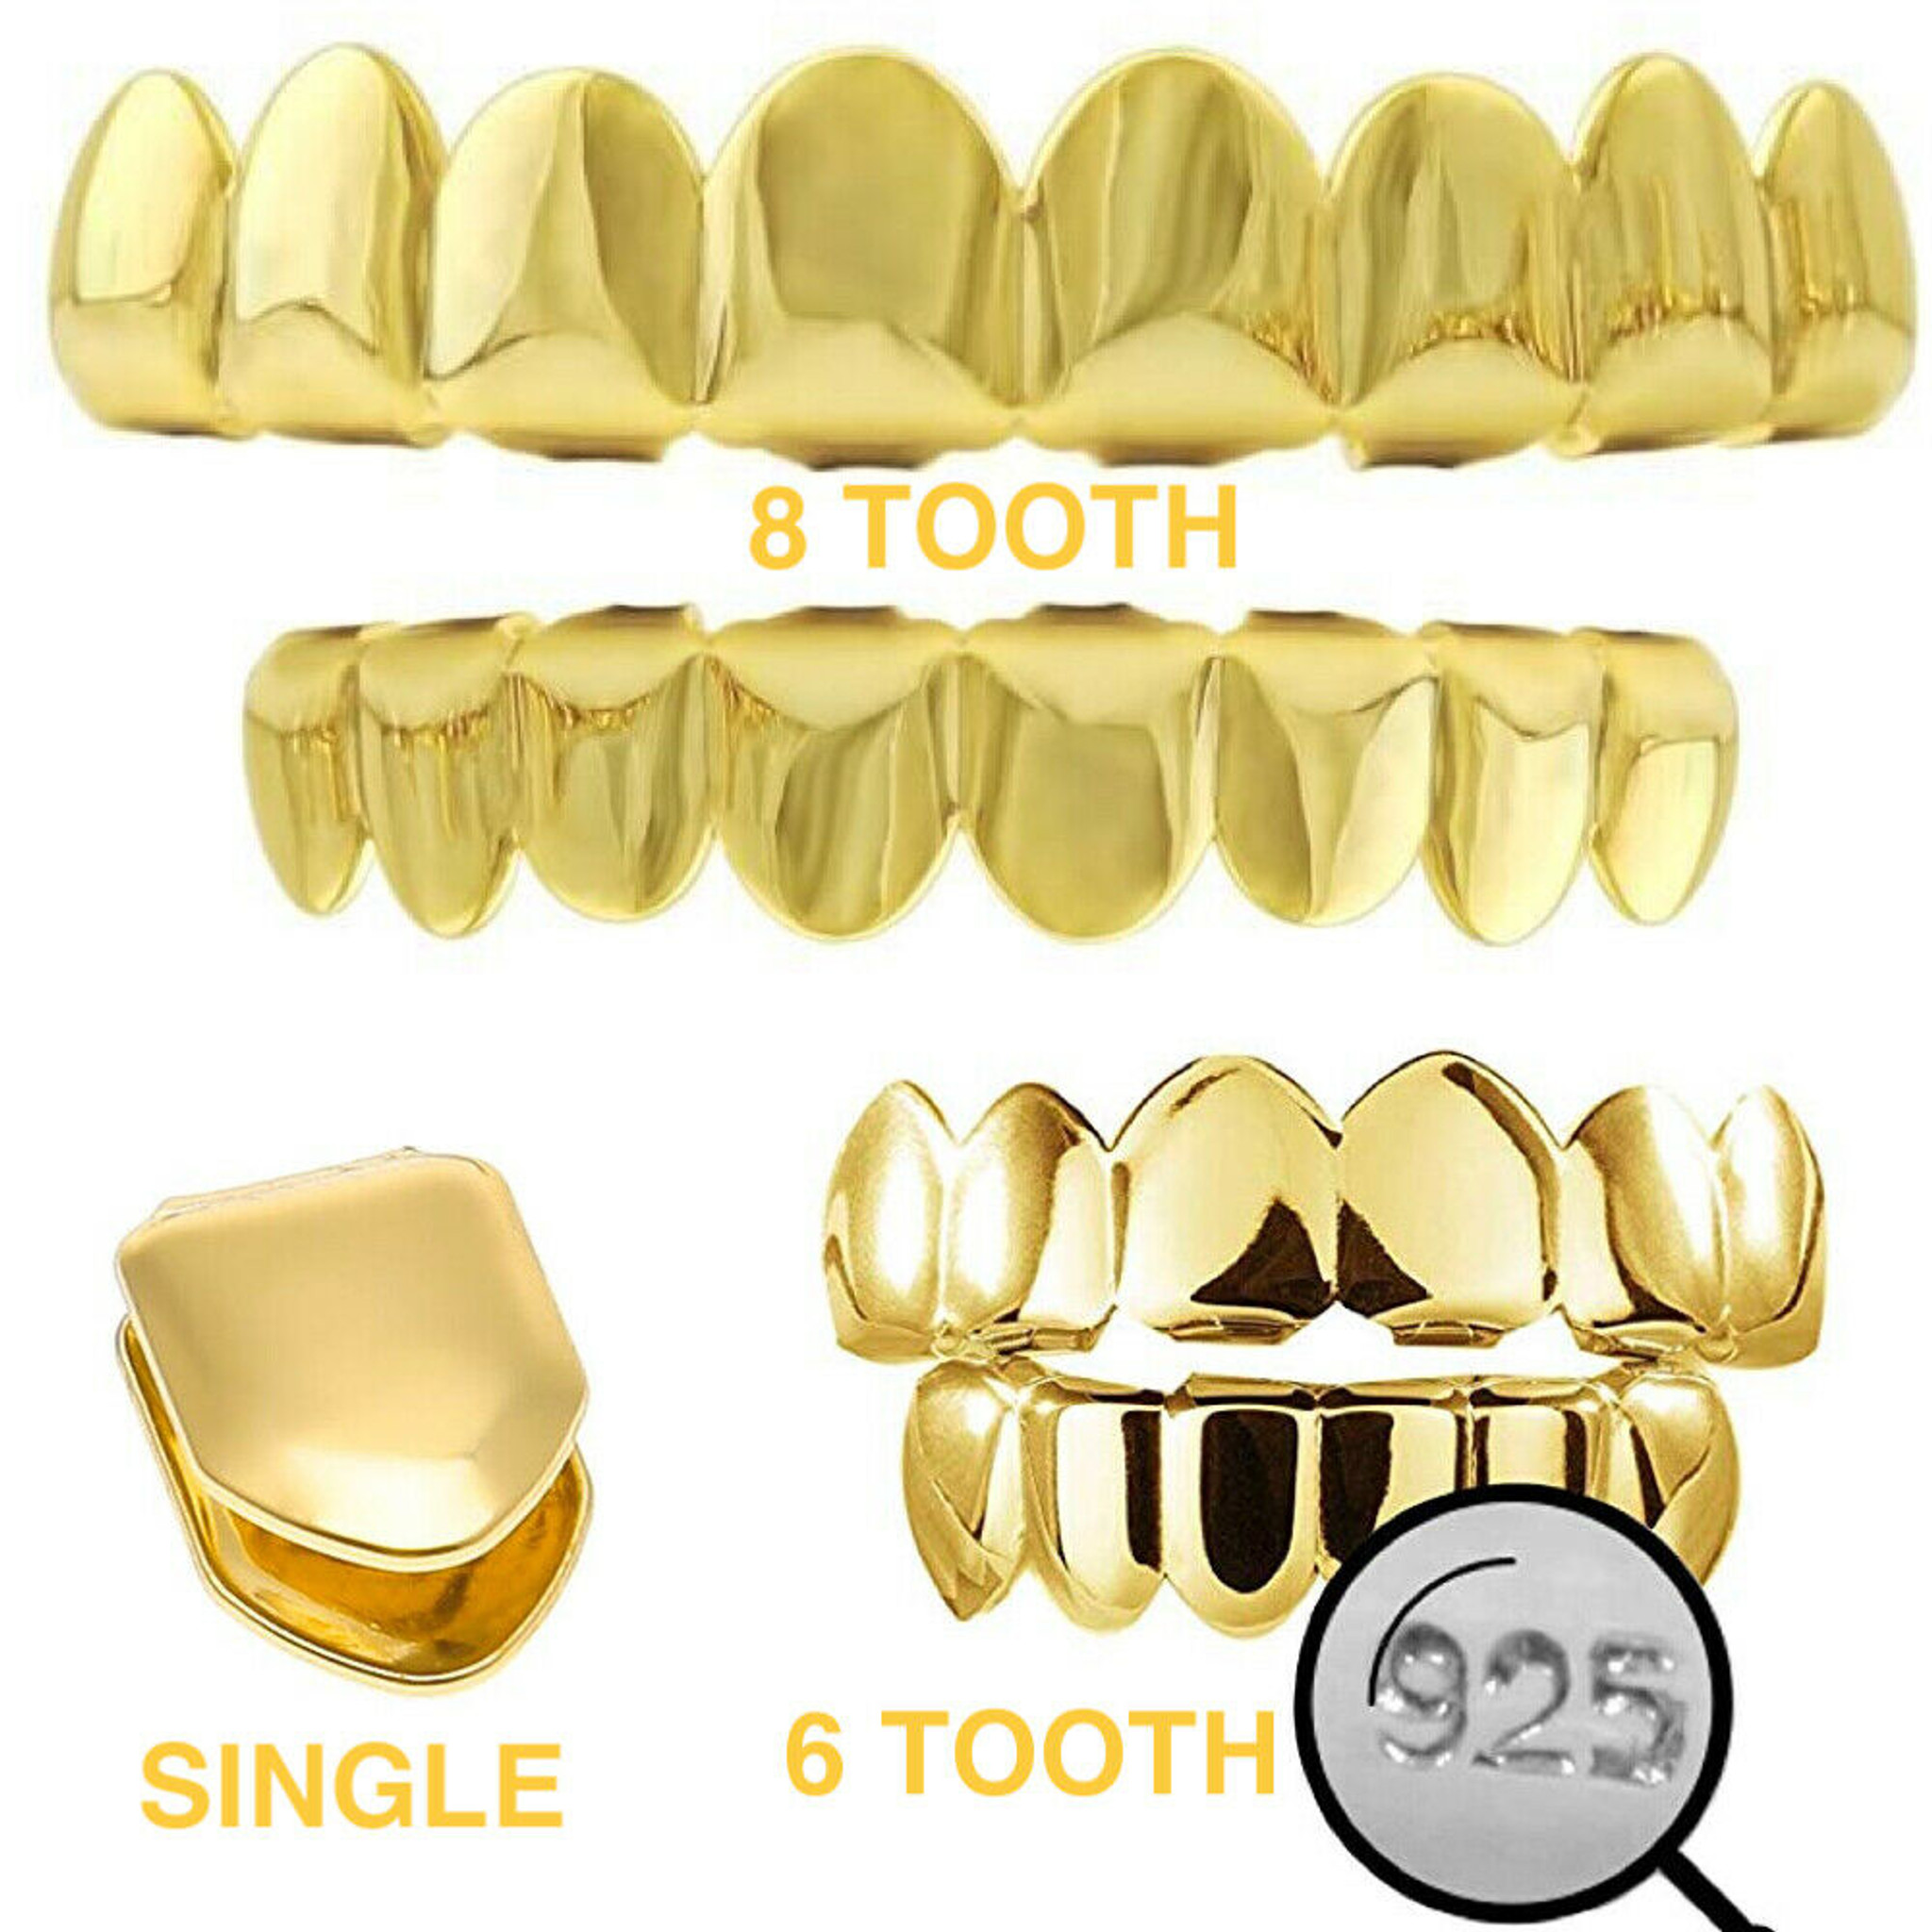 Real Solid 925 Sterling Silver Hip Hop Grillz Six Teeth Plain Top Bottom or Set